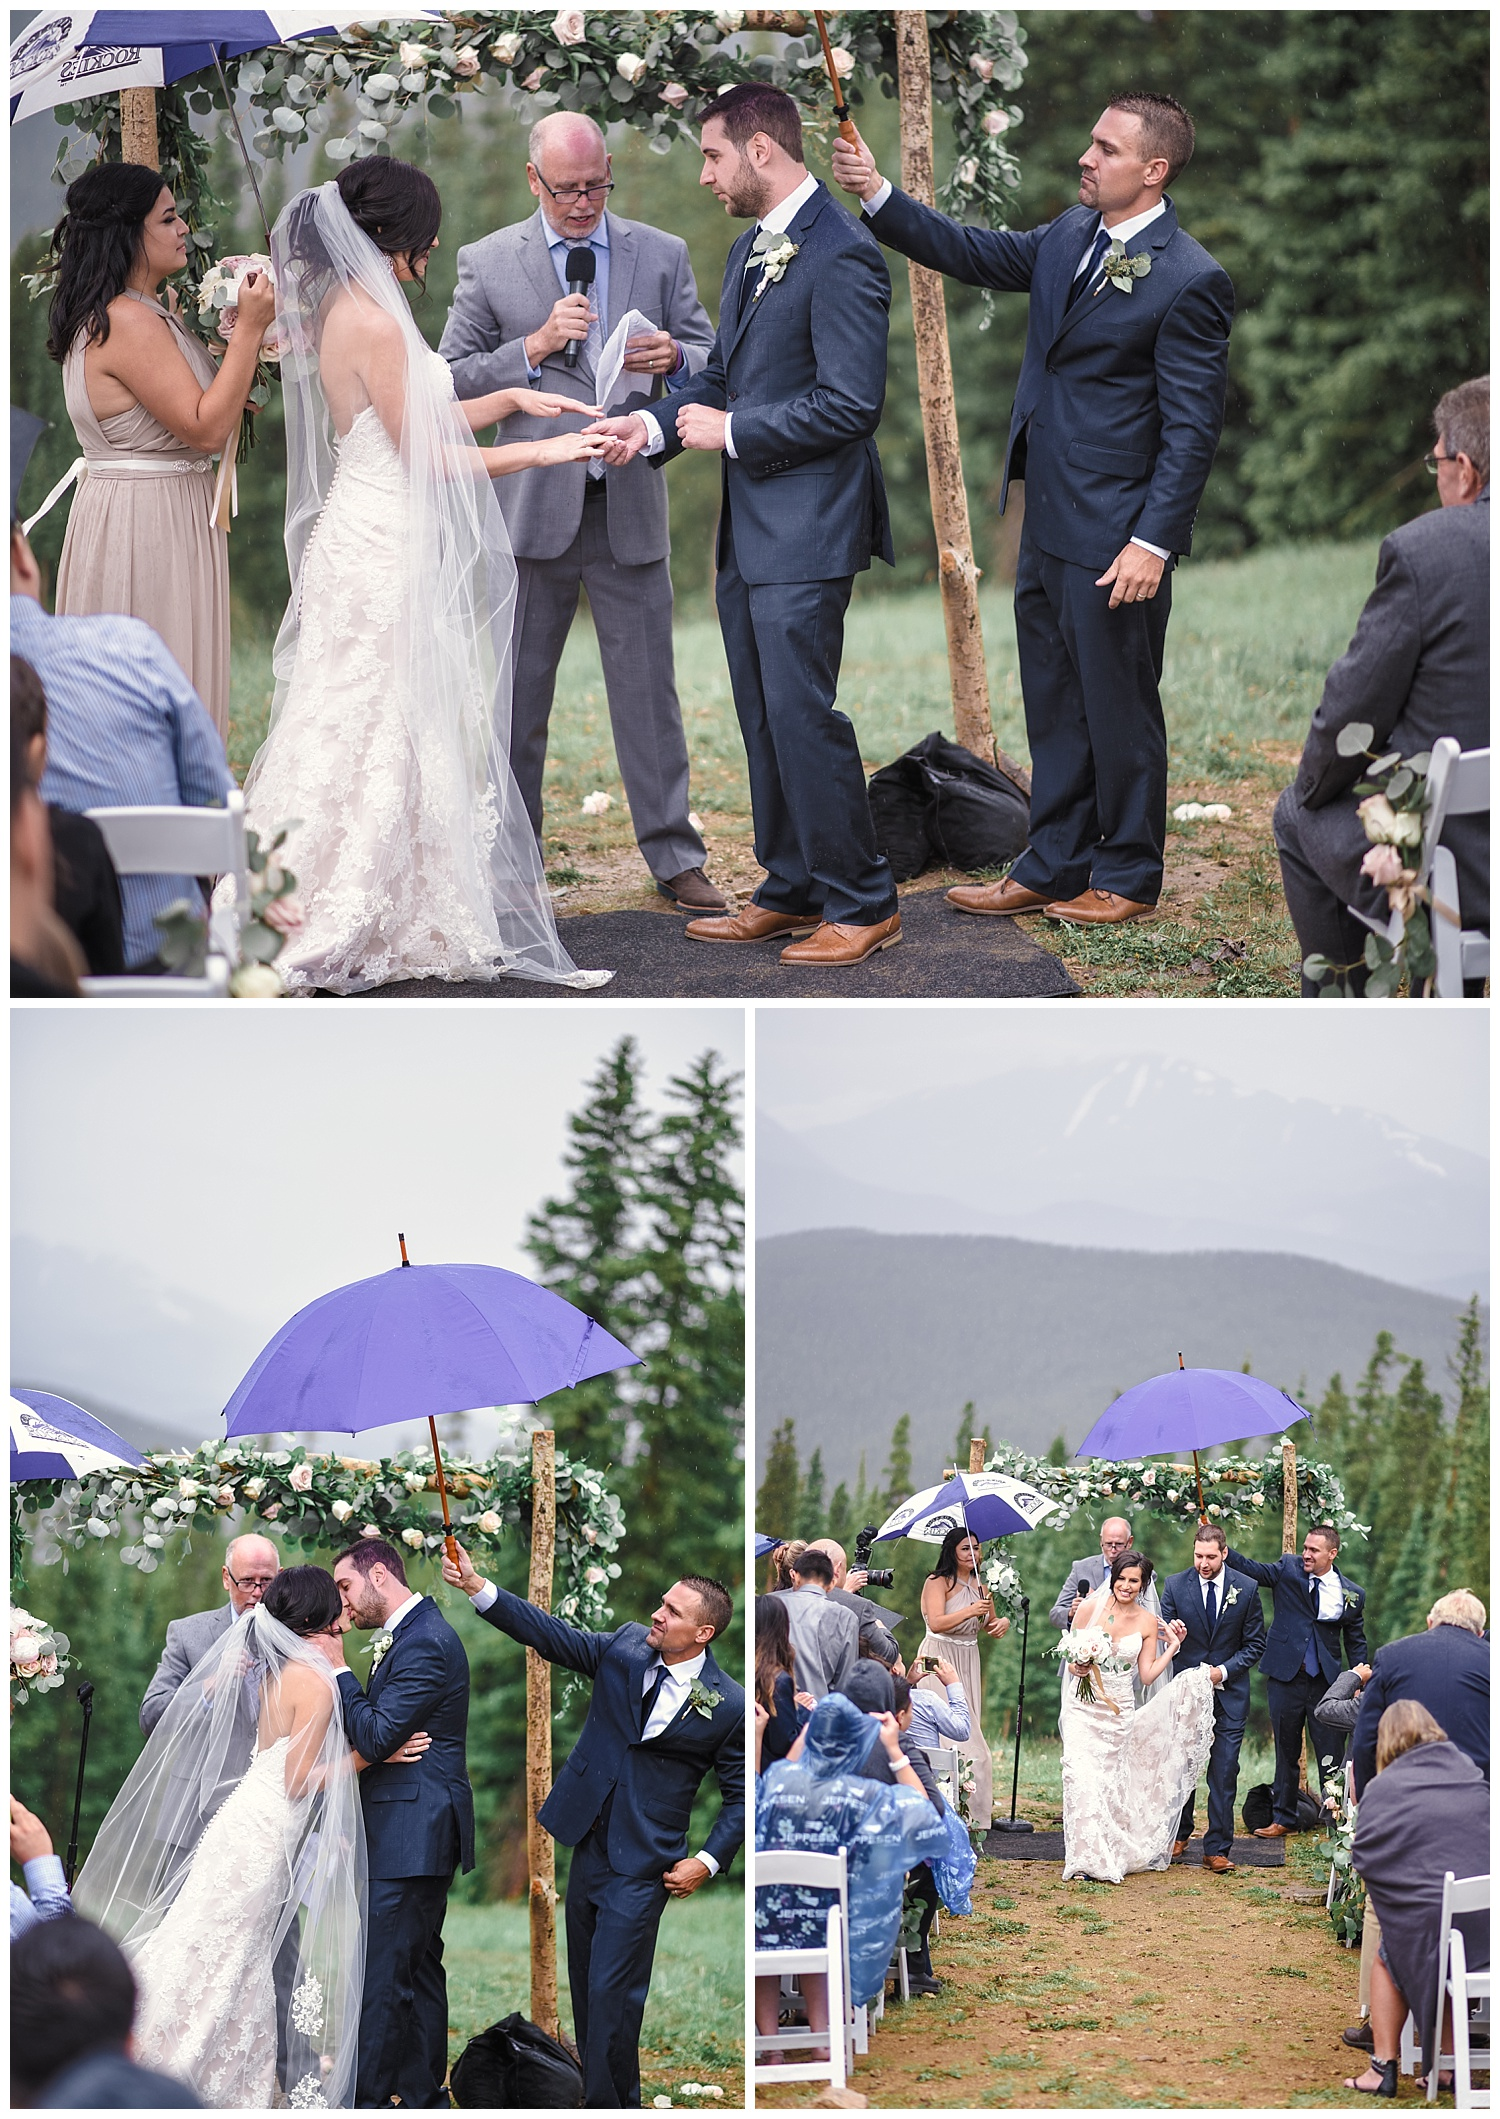 wedding at keystone resort in colorado, colorado wedding photographer, denver wedding photographer, intimate colorado wedding photographer, rocky mountain wedding photographer